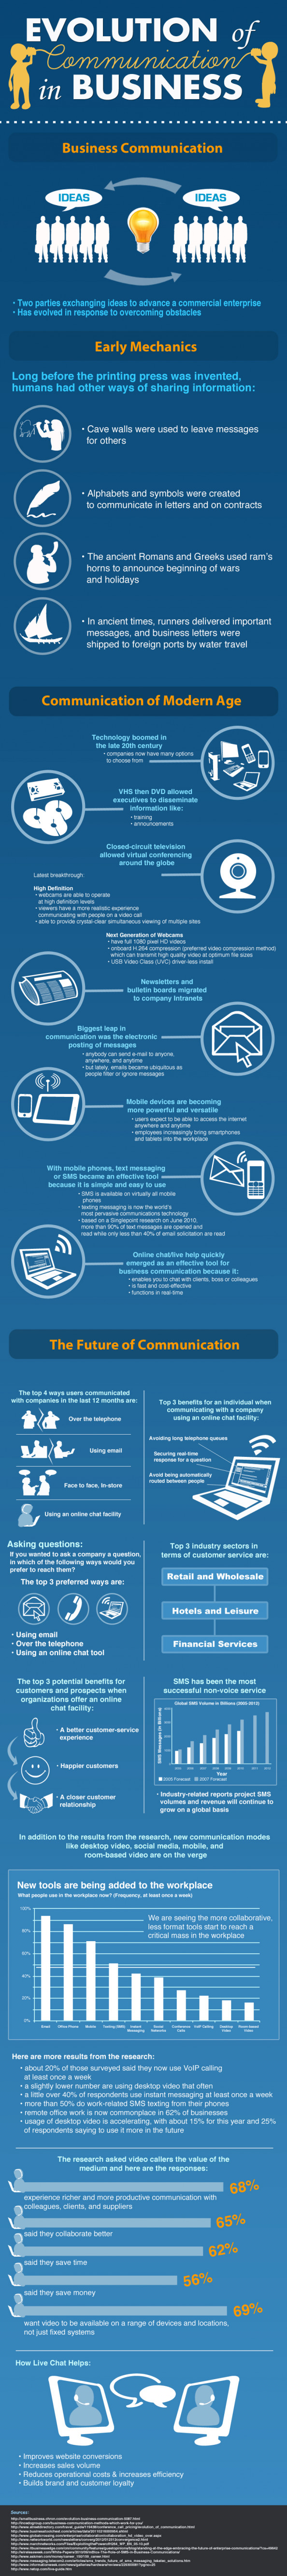 The Evolution of Communication in Business Infographic